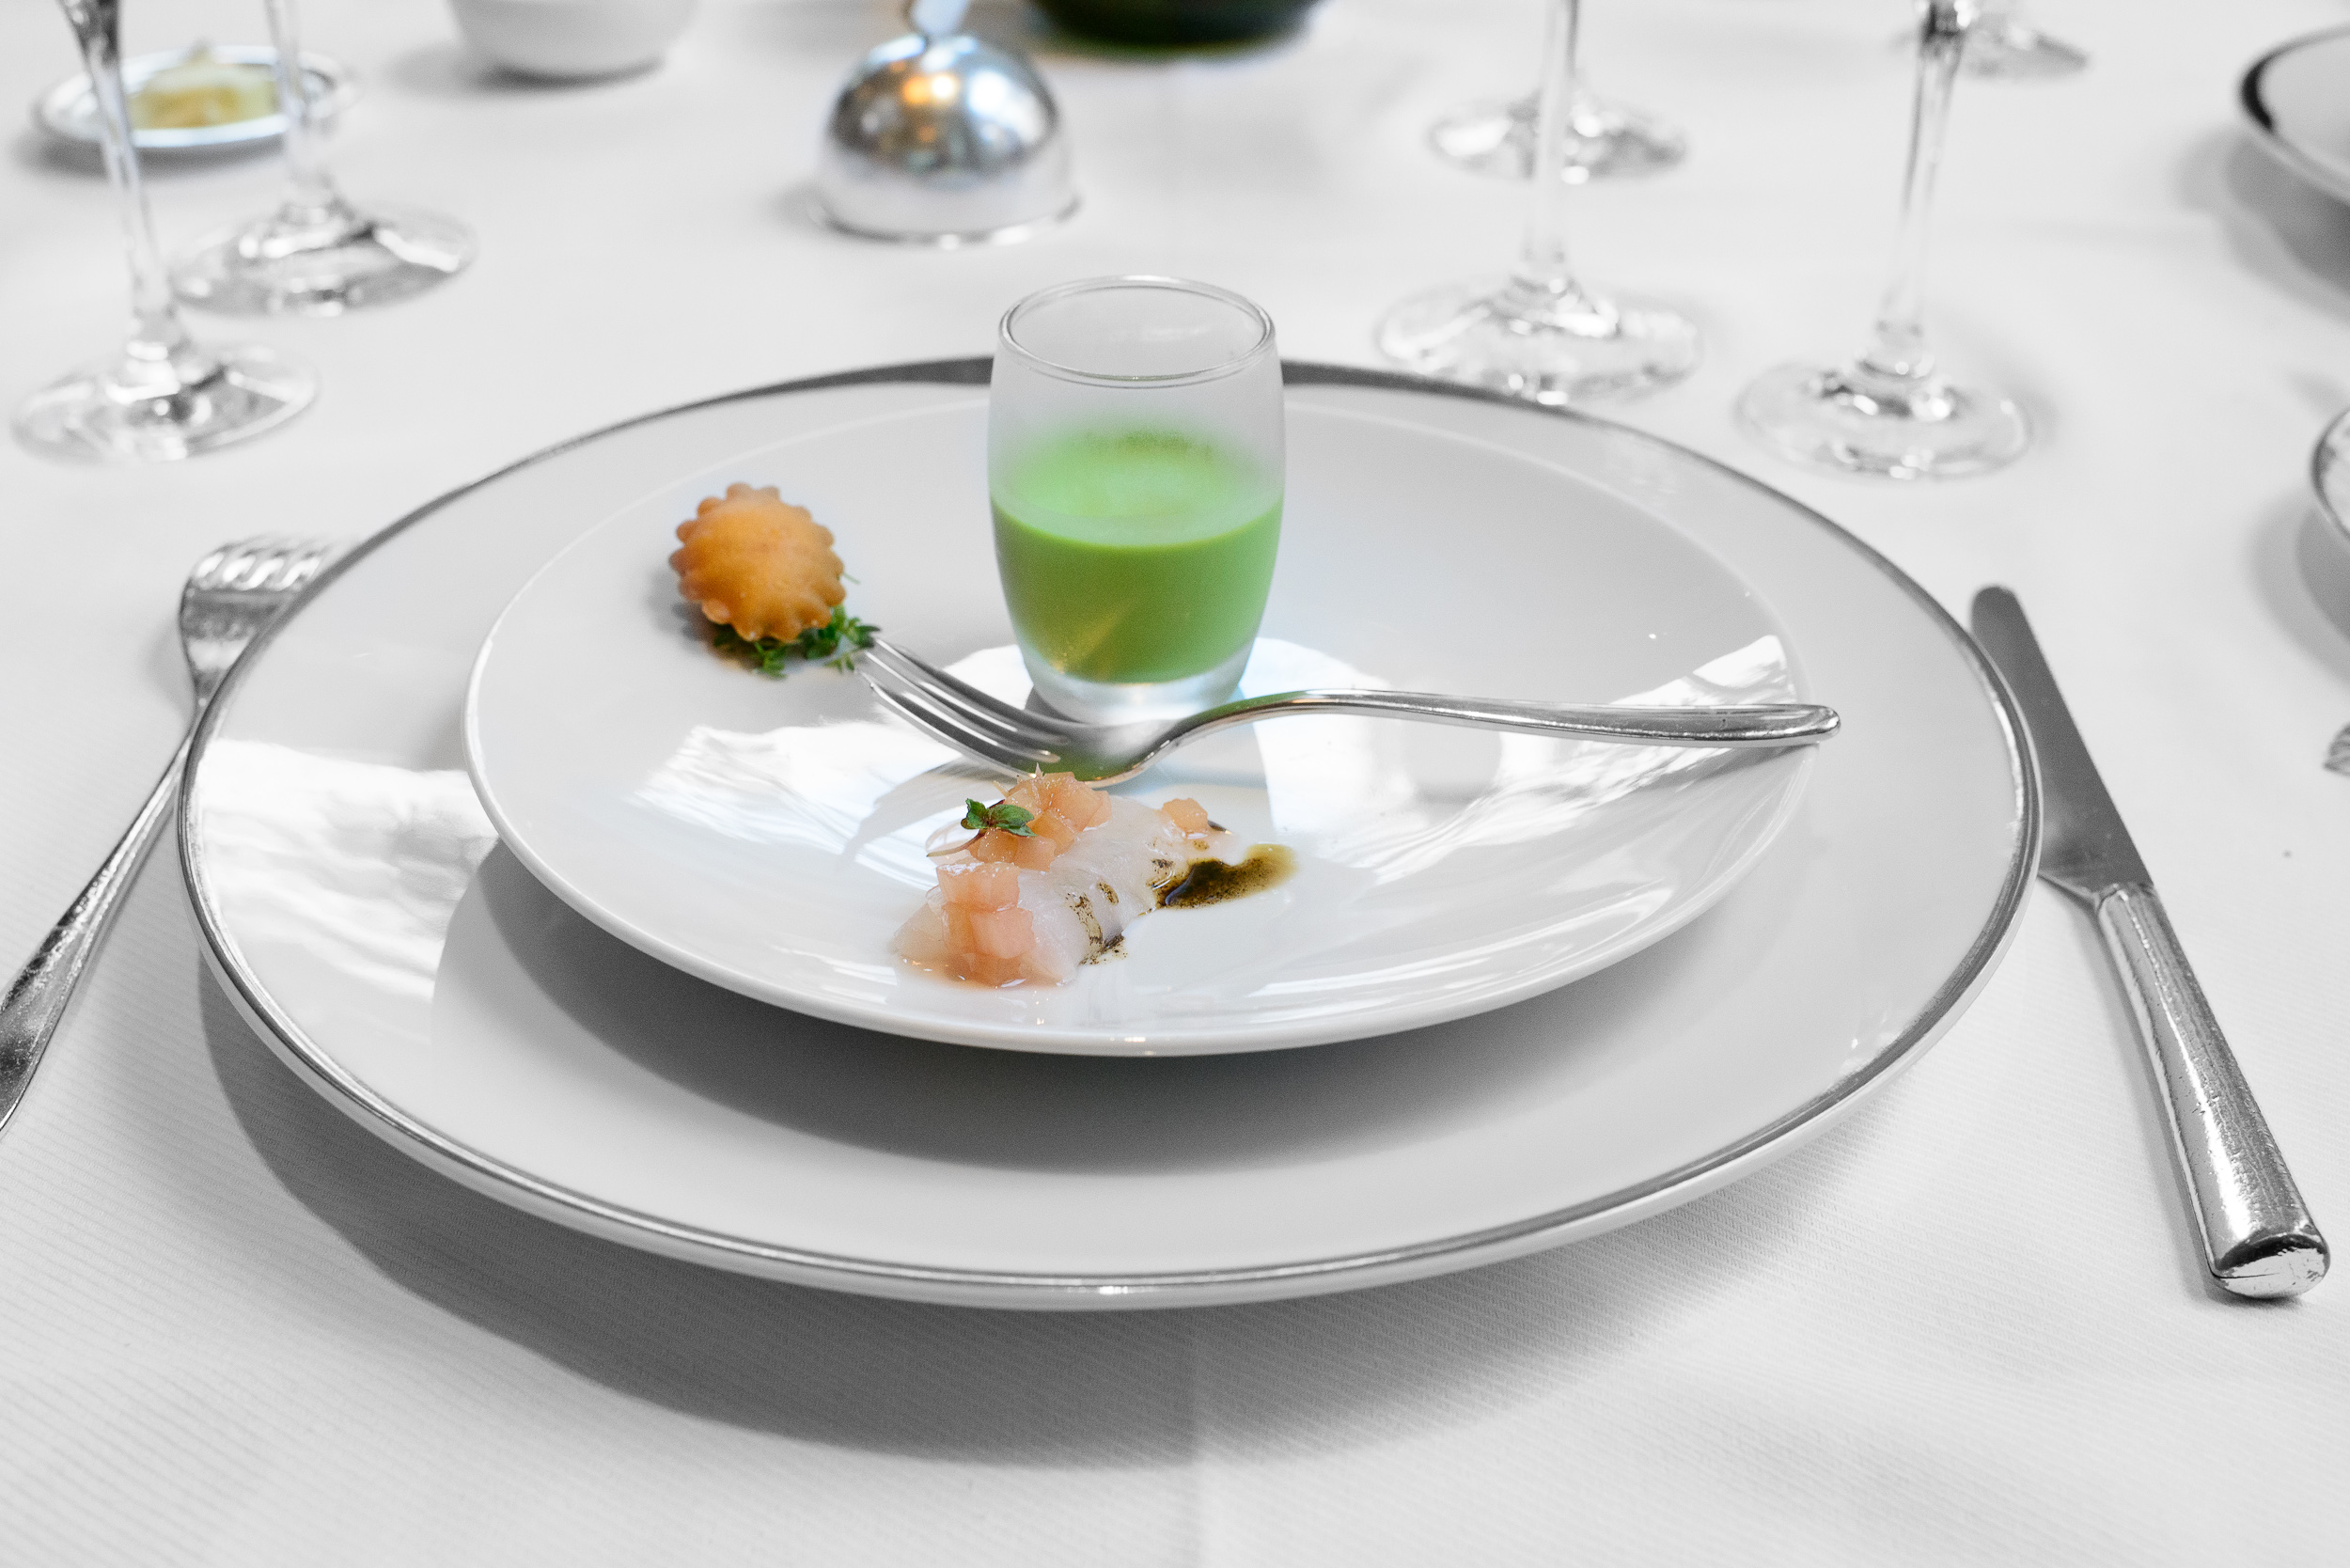 Oyster fritter, almond gazpacho with goat cheese